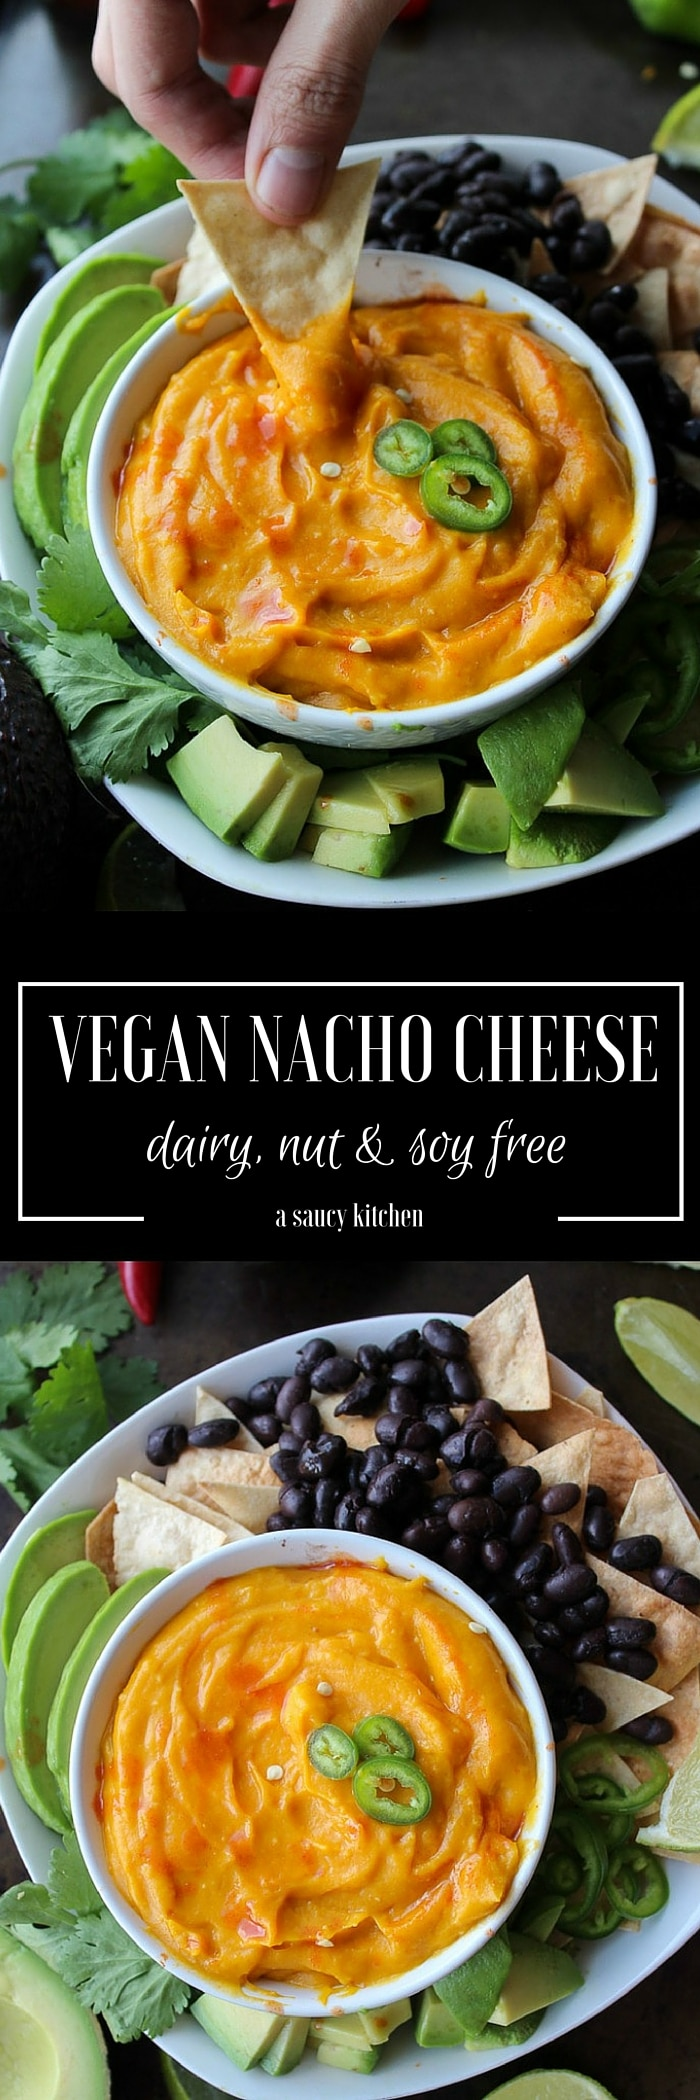 Simple Vegan Nacho Cheese - made with only a handful of ingredients (plus water and salt but those don't count)! dairy, nut, and soy free